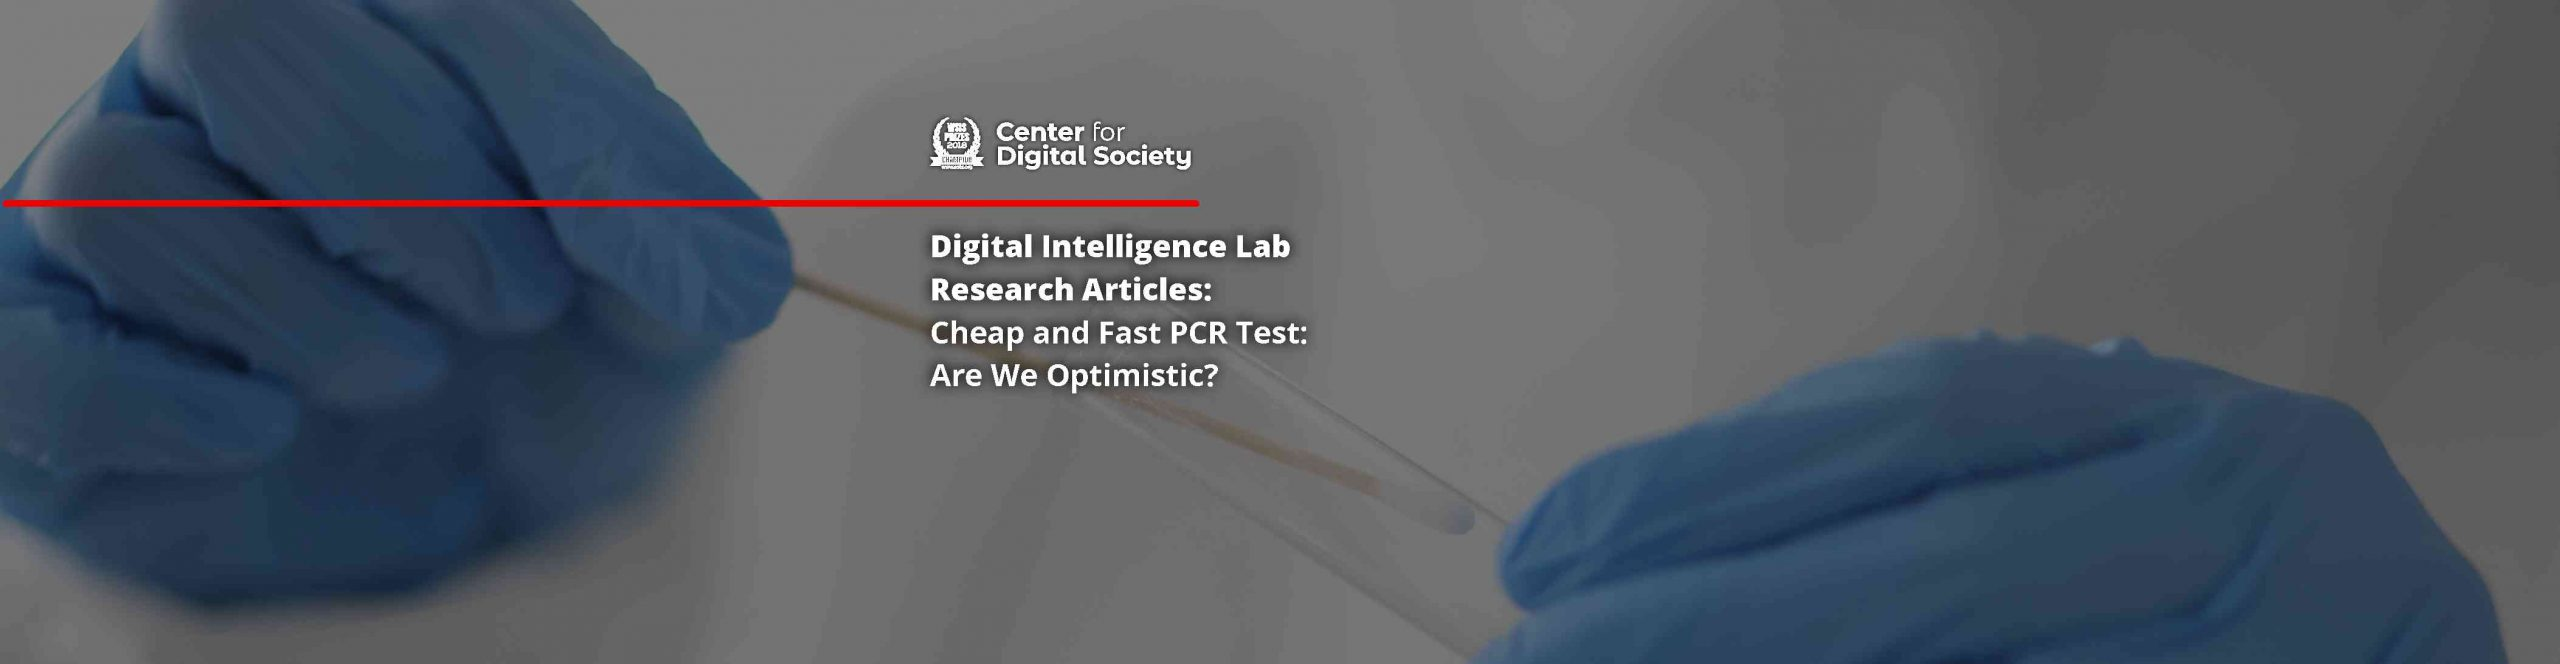 Cheap and Fast PCR Test: Are We Optimistic?